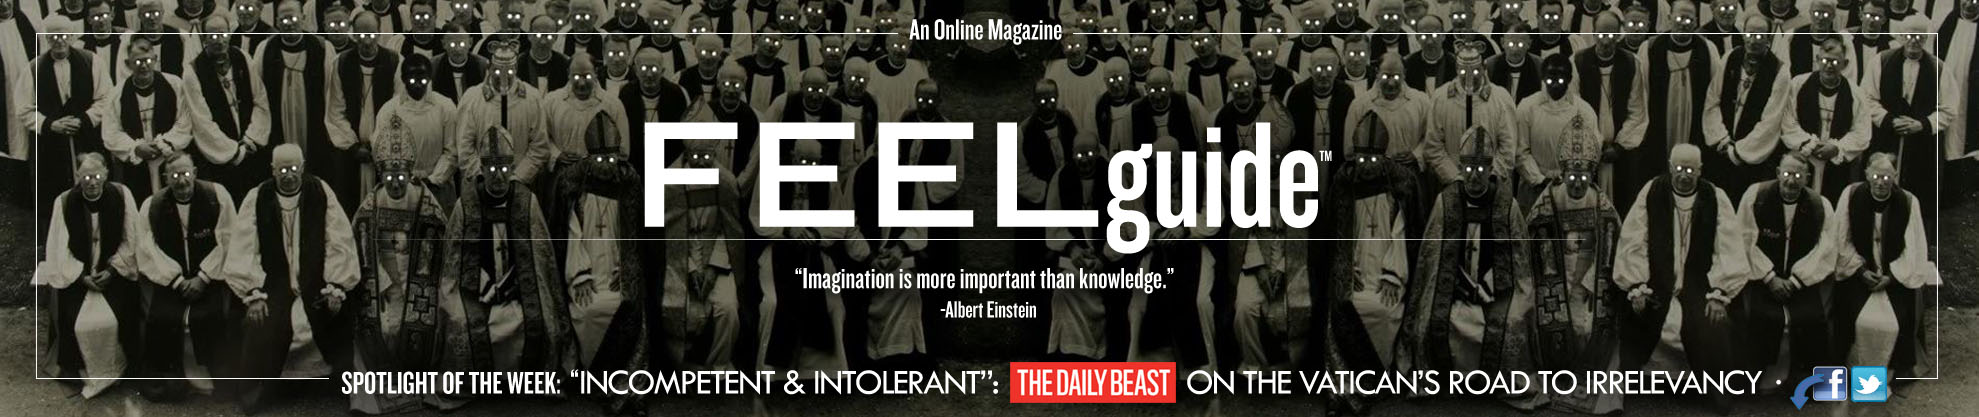 NewBanner119A Banner Photo #119: Incompetent & Intolerant: The Daily Beast On The Vaticans Road To Irrelevancy